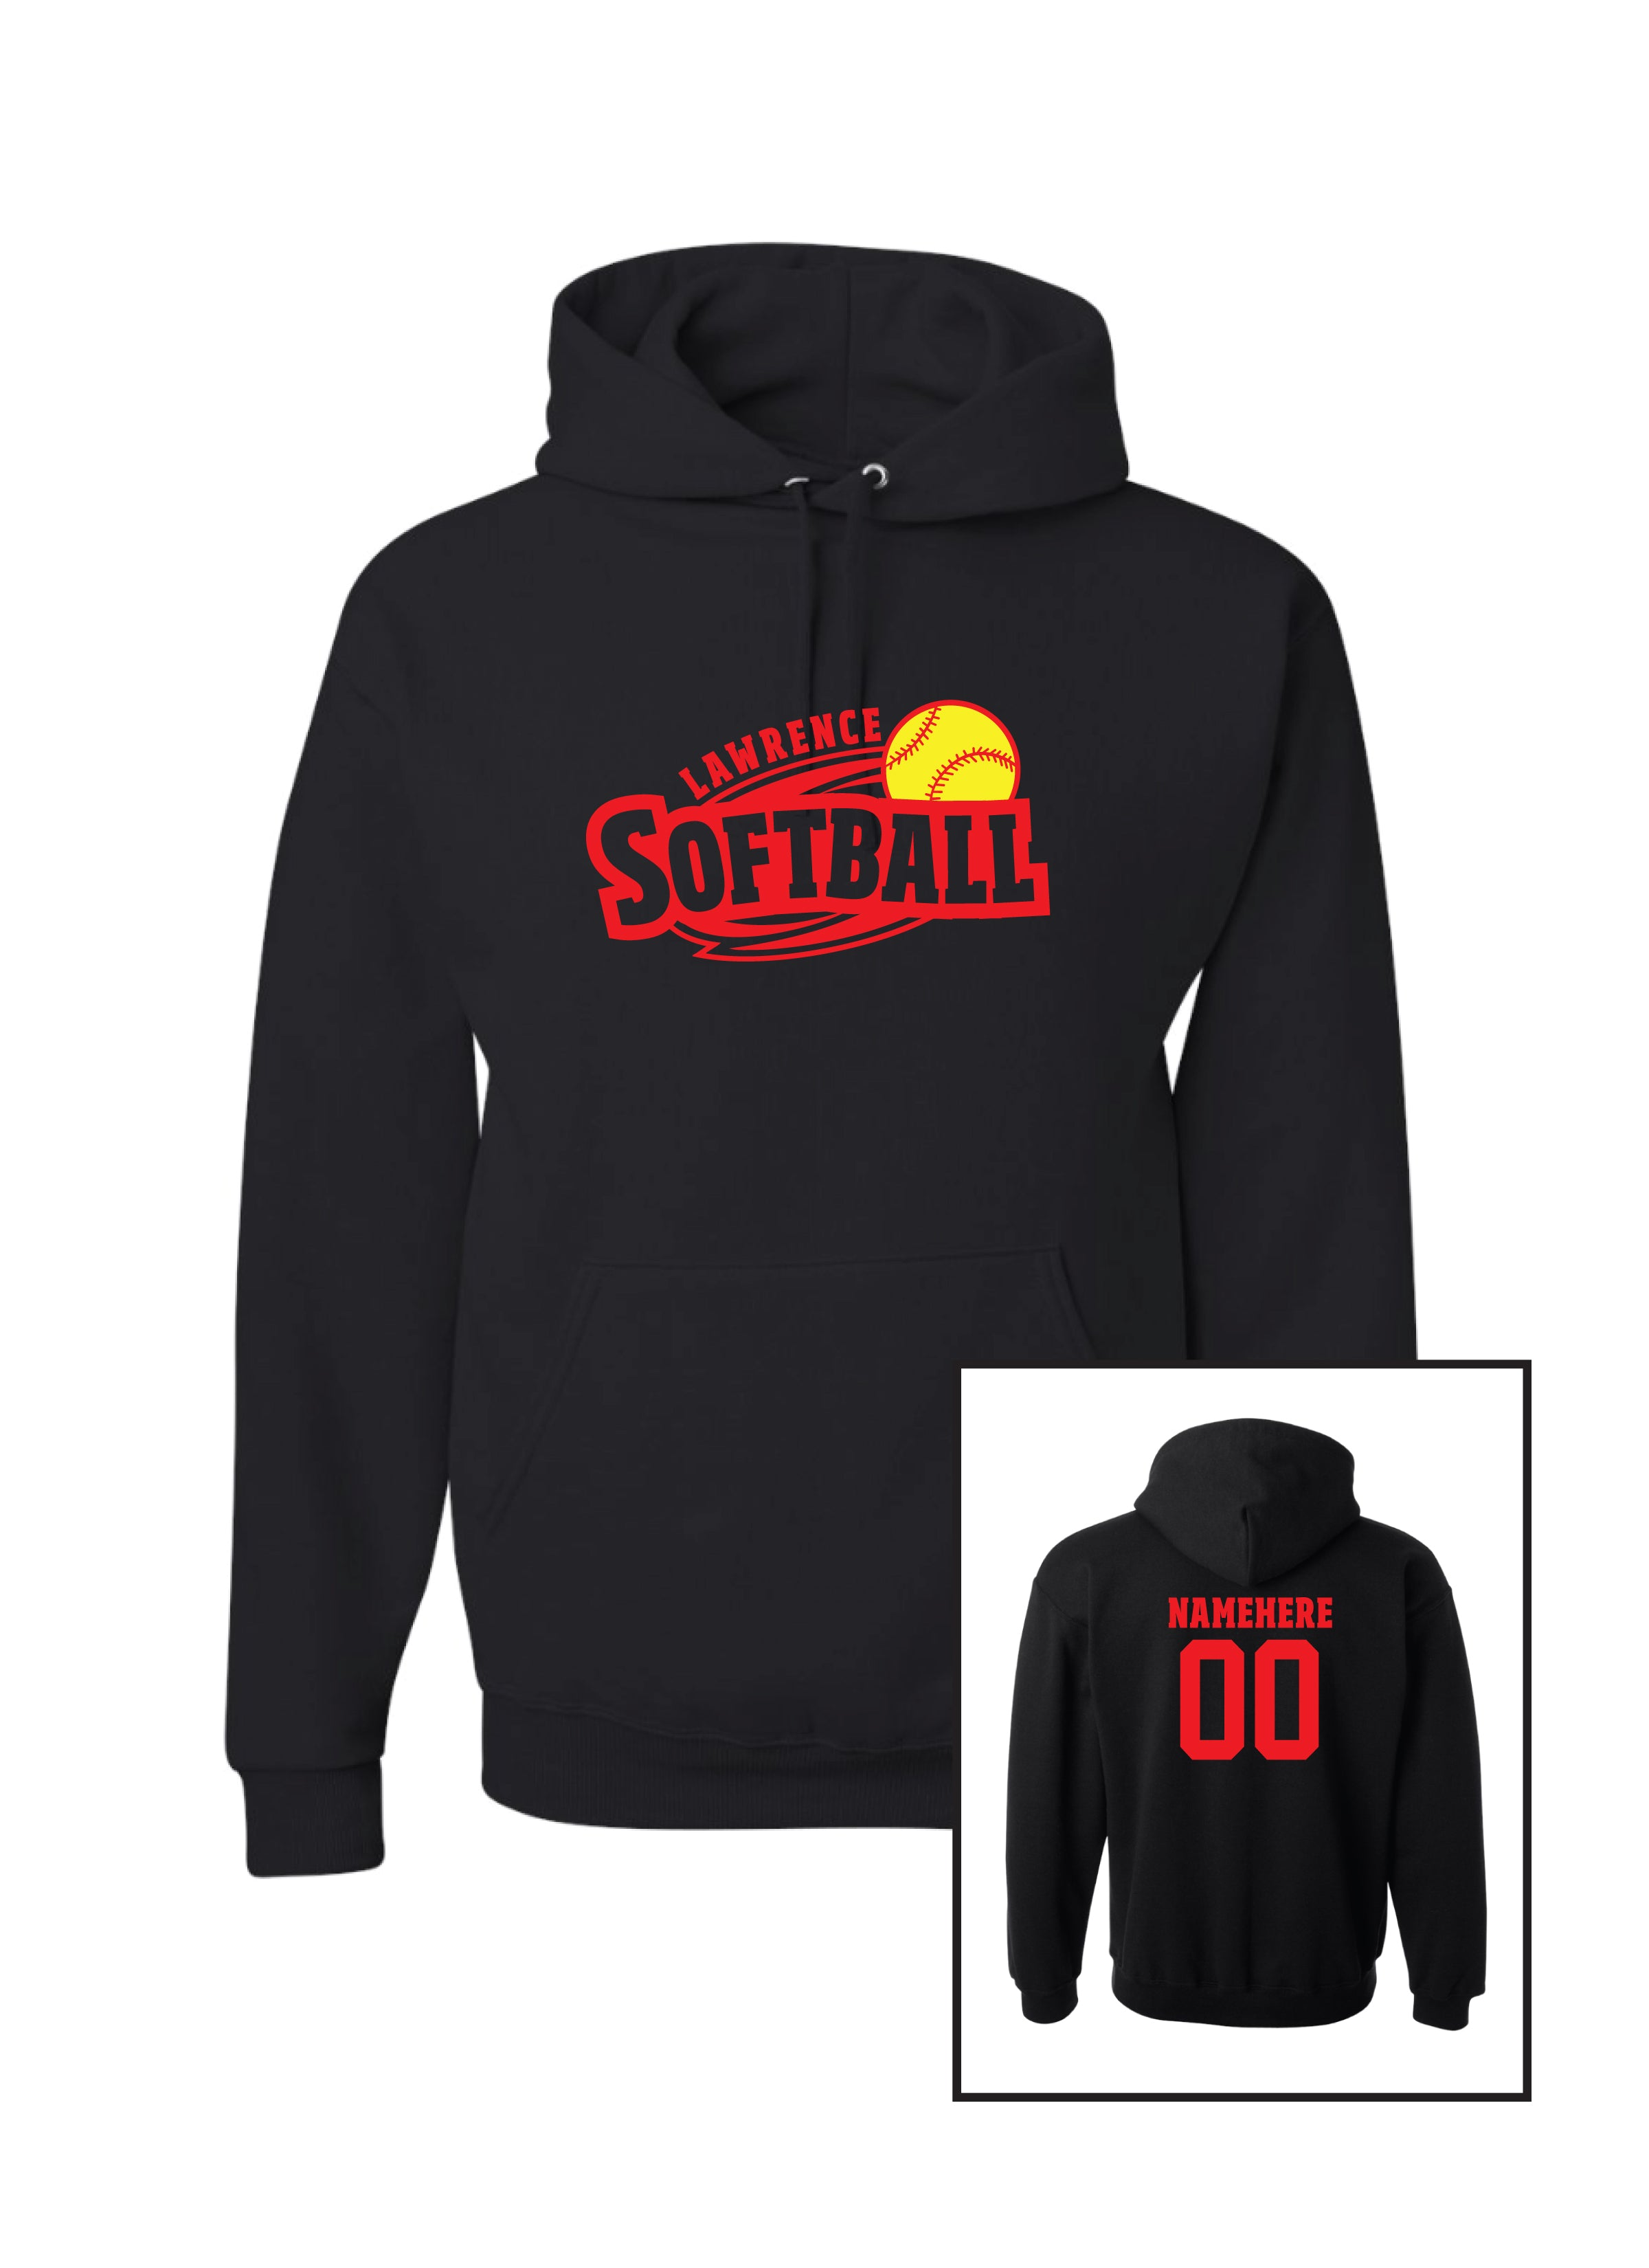 Lawrence Softball  Gildan Youth Hoodie